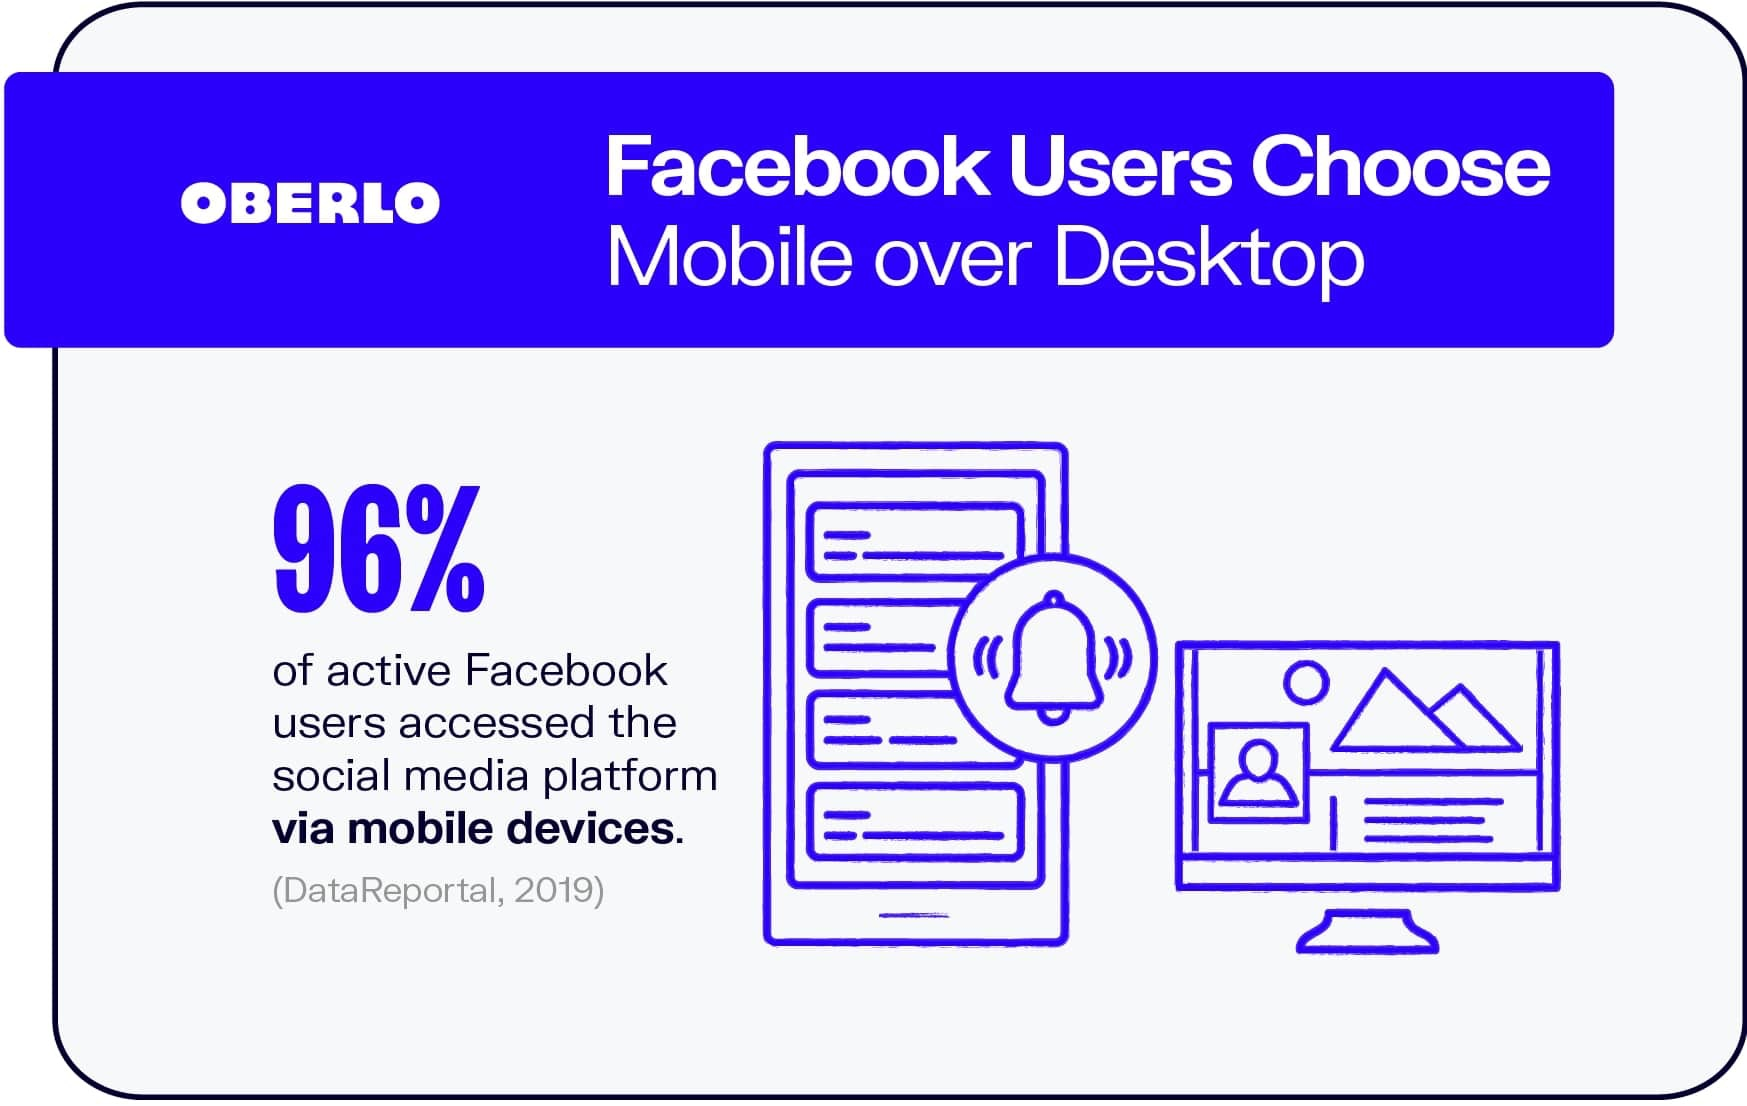 Facebook Users Choose Mobile Over Desktop